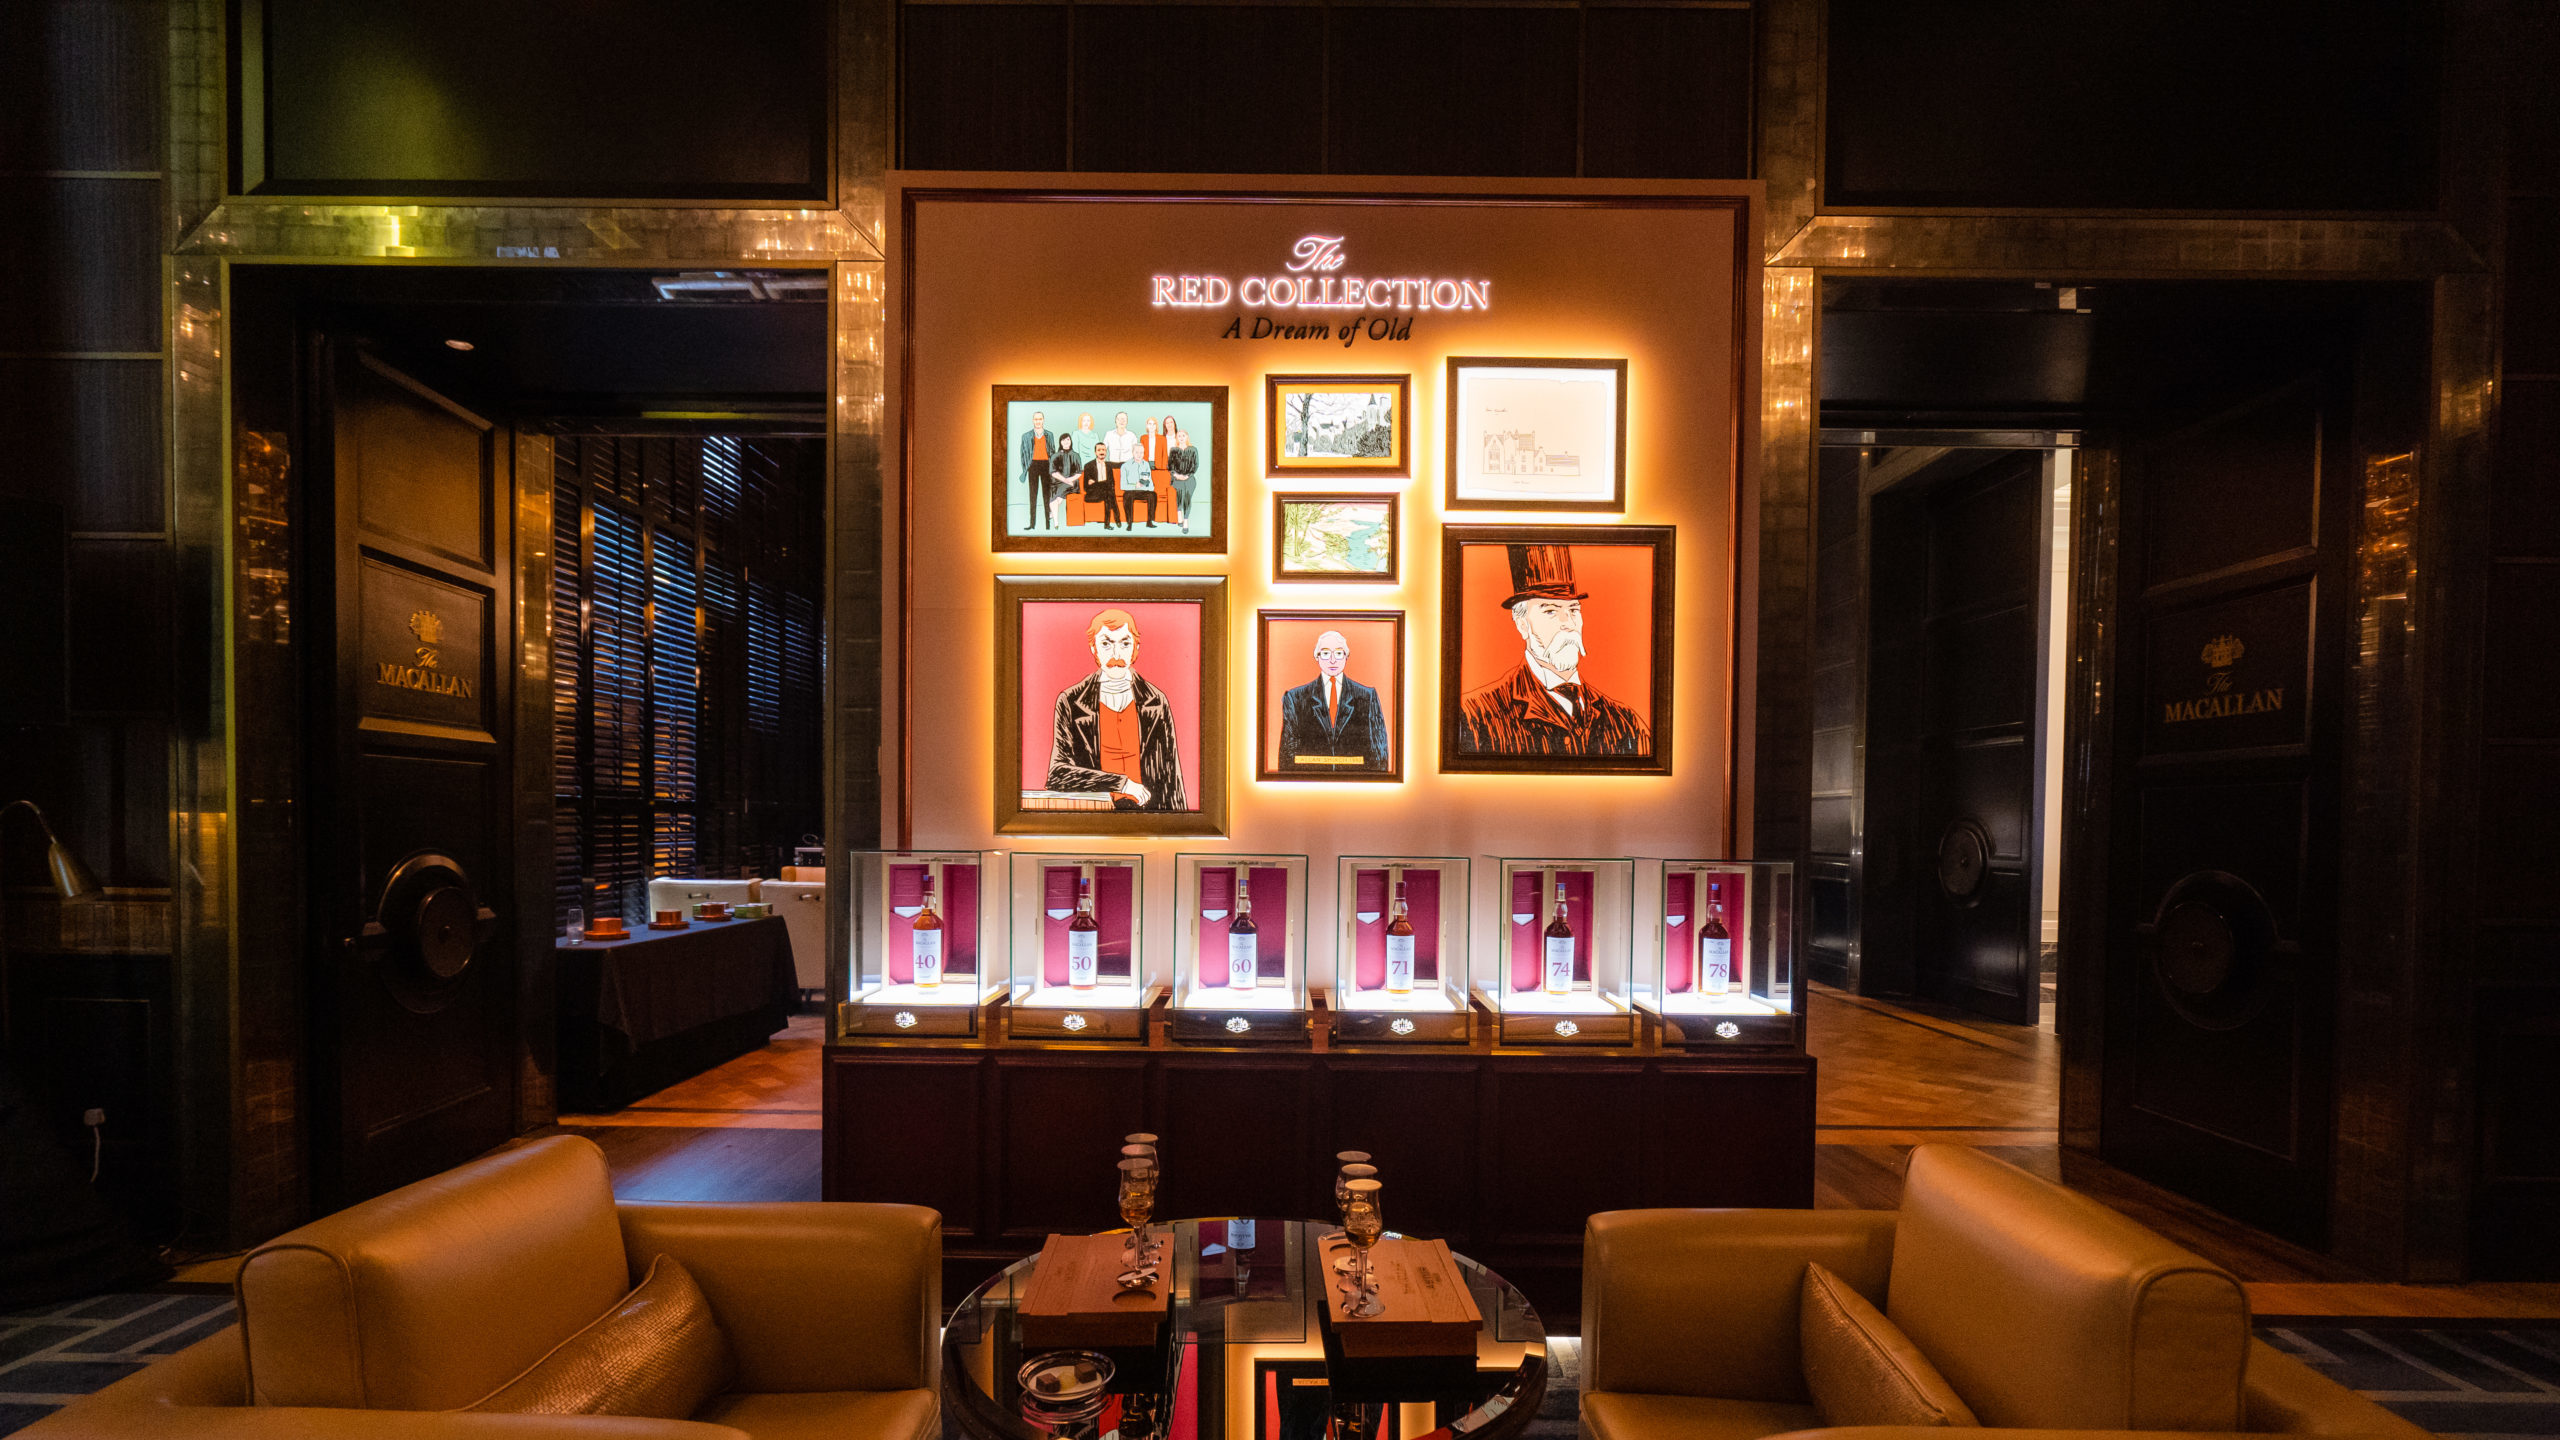 Discover The Macallan M Room At The Astor Bar Of St. Regis KL